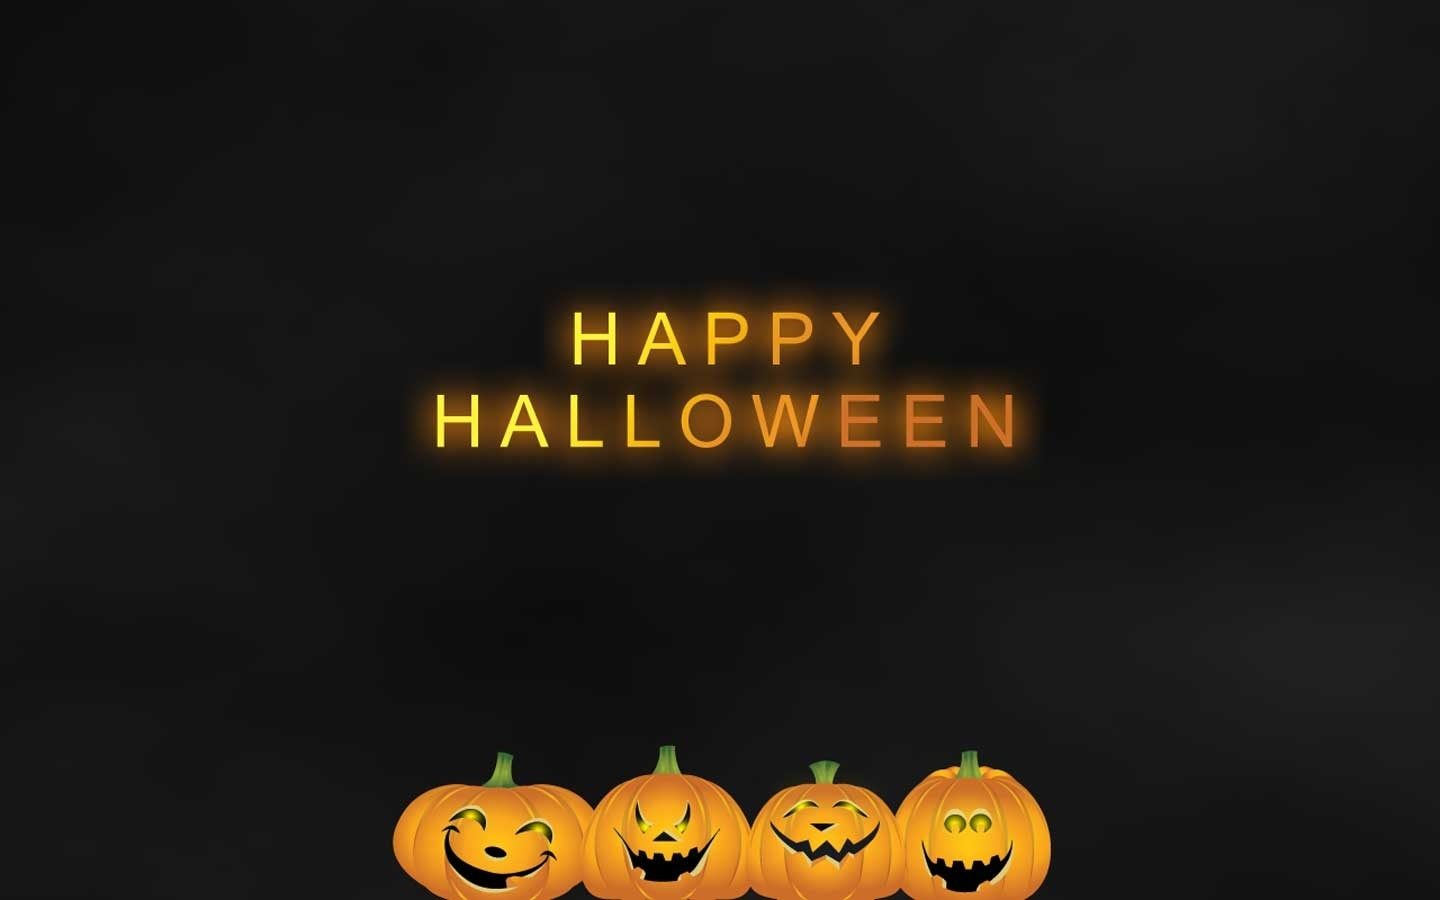 happy halloween desktop wallpapers - wallpaper cave